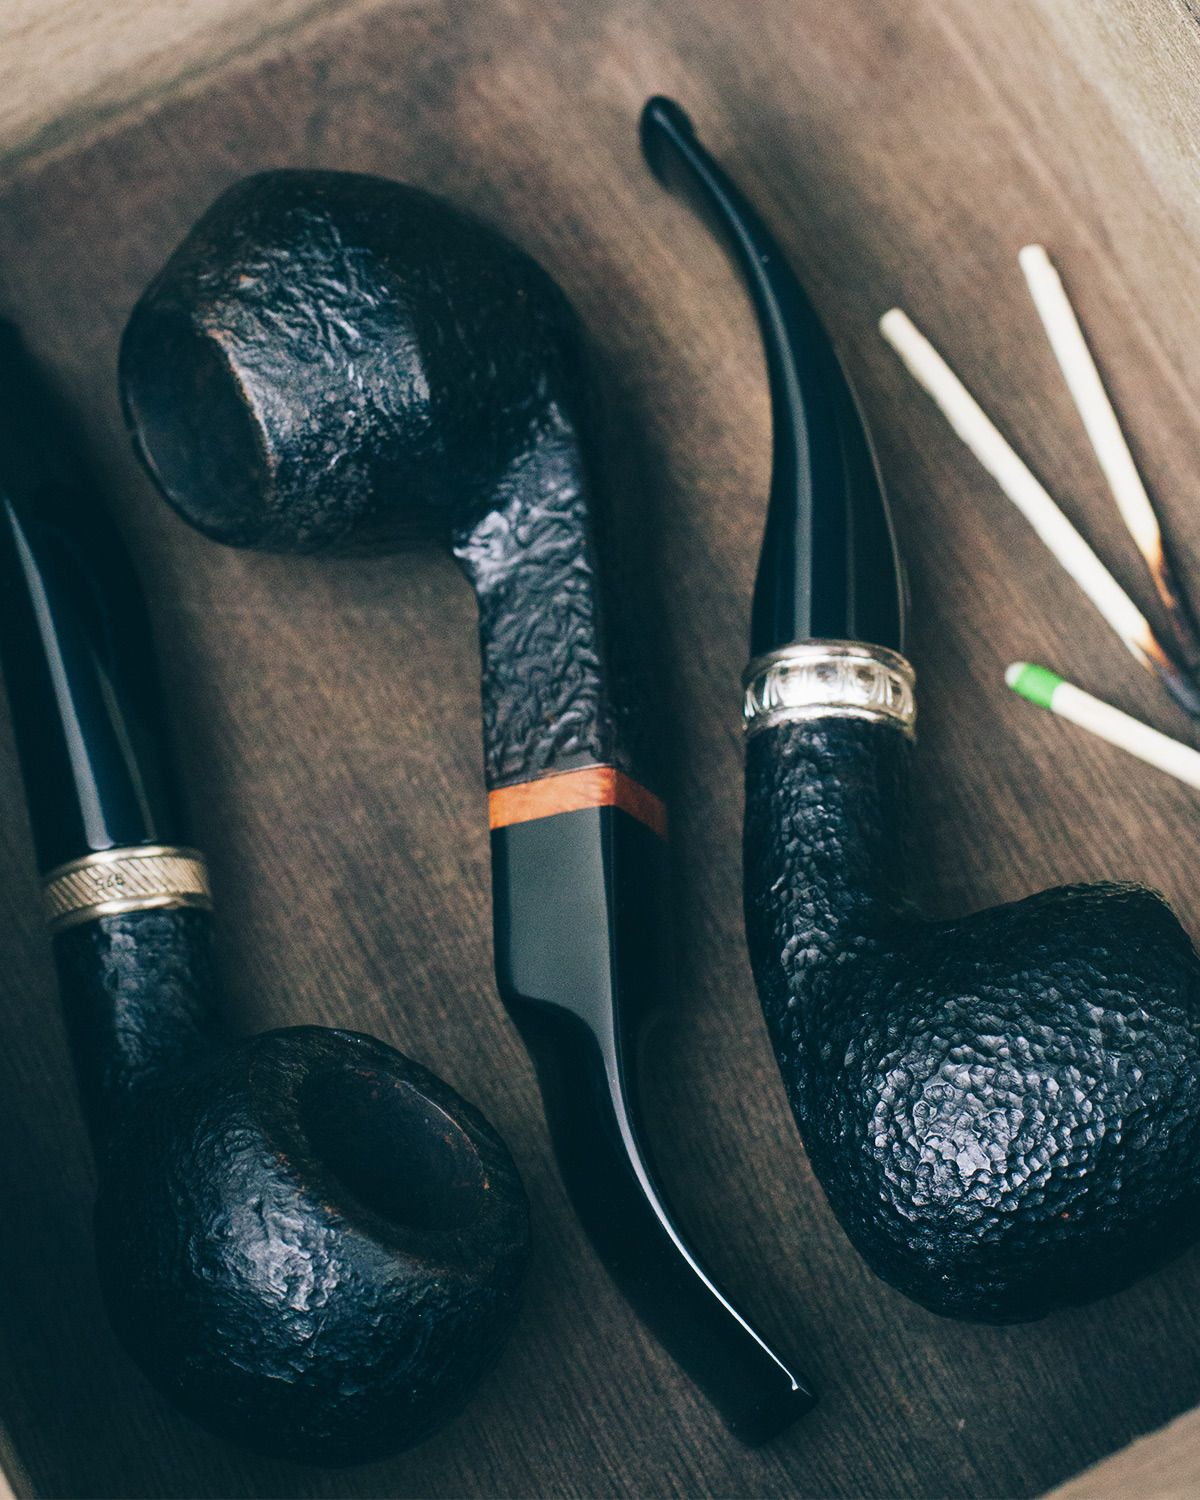 Smokingpipes com — 75 Italian estate pipes under $75 are on